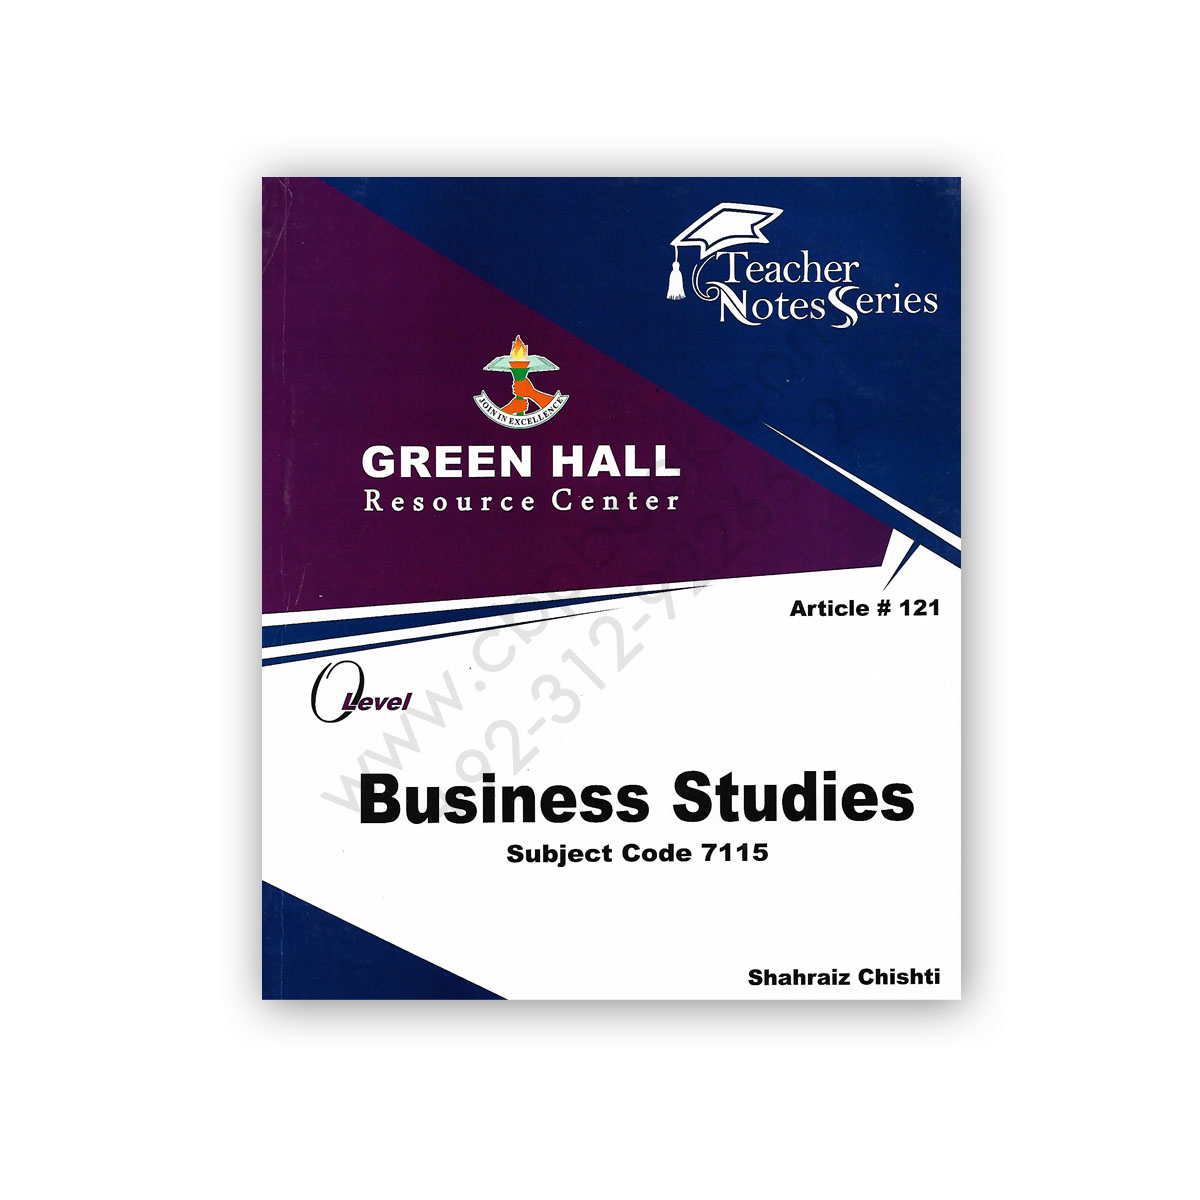 O Level BUSINESS STUDIES Notes By Shahraiz Chishti (Art#121) – Green Hall